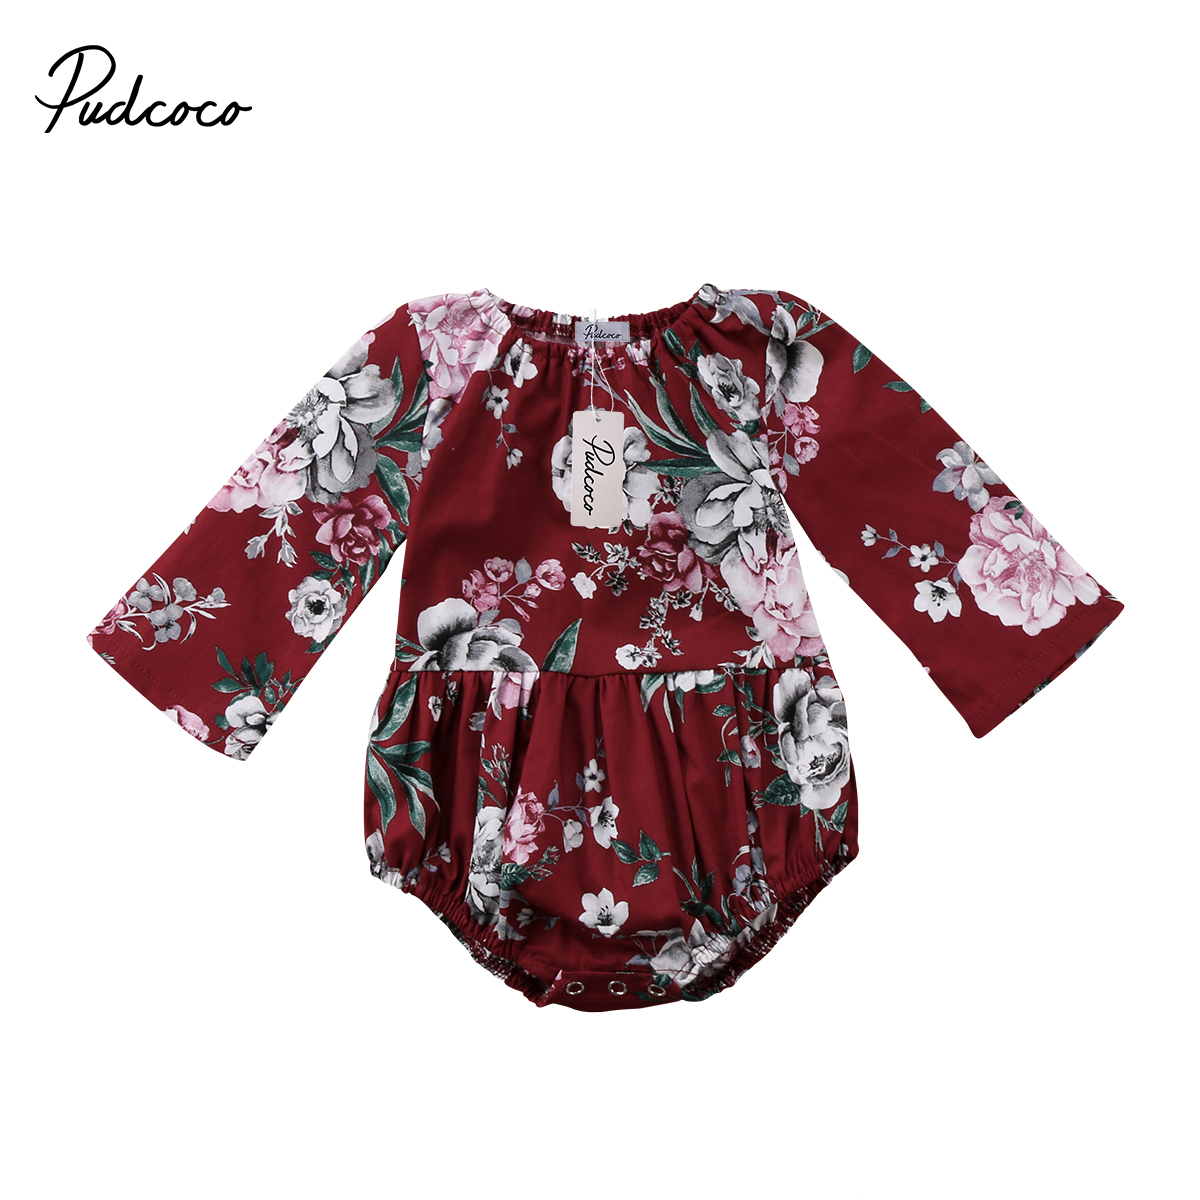 Pudcoco Infant Baby Girls Cotton Floral   Romper   Long Sleeve Cotton Jumpsuit Outfits Winter Spring Baby Clothing